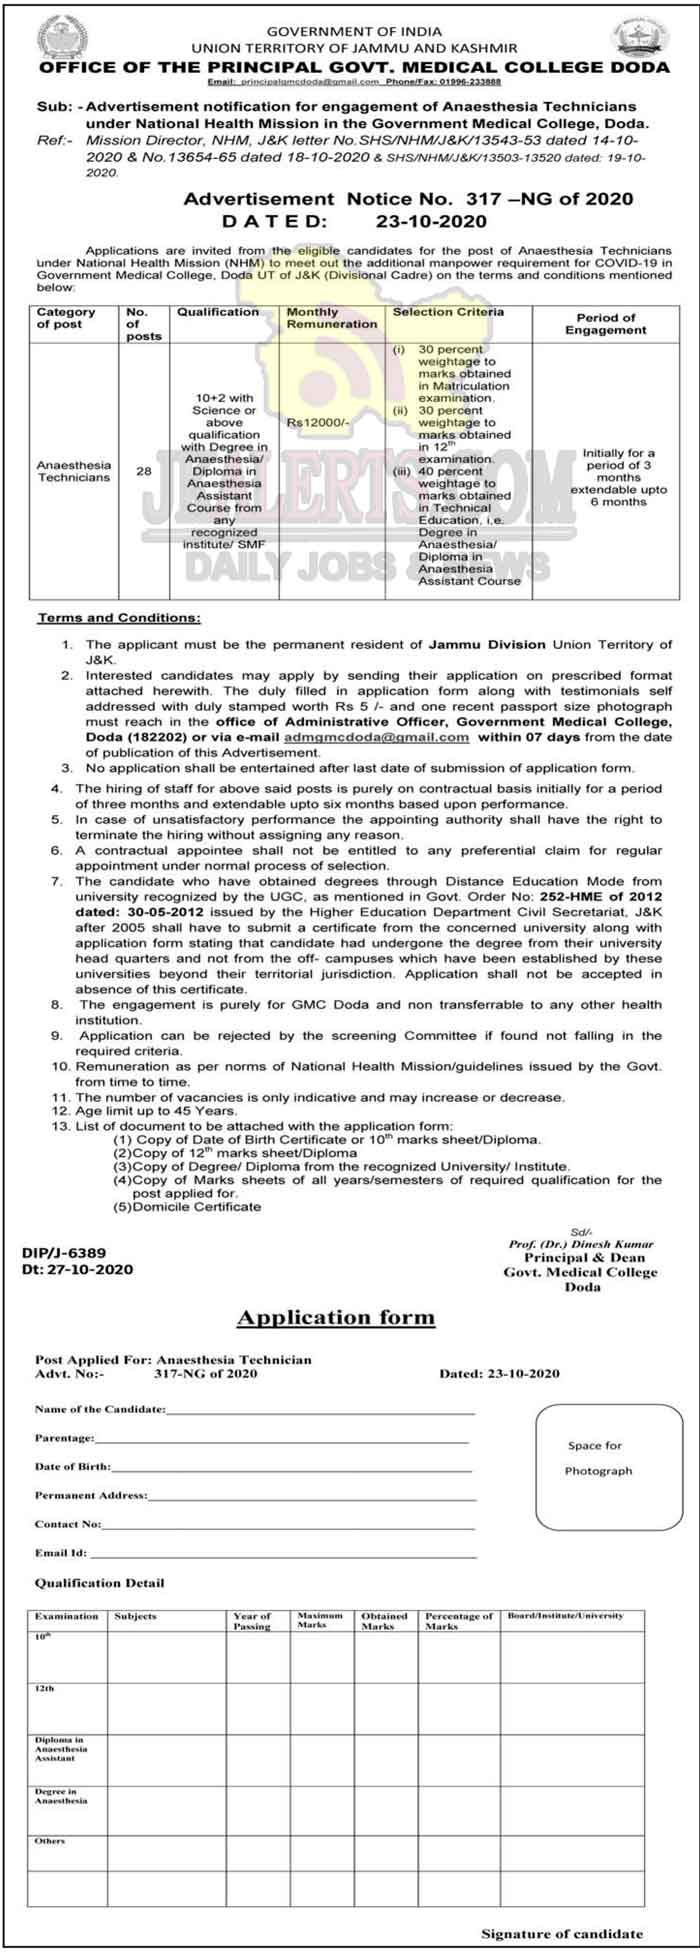 GMC Doda Anaesthesia Technicians Jobs recruitment under NHM.